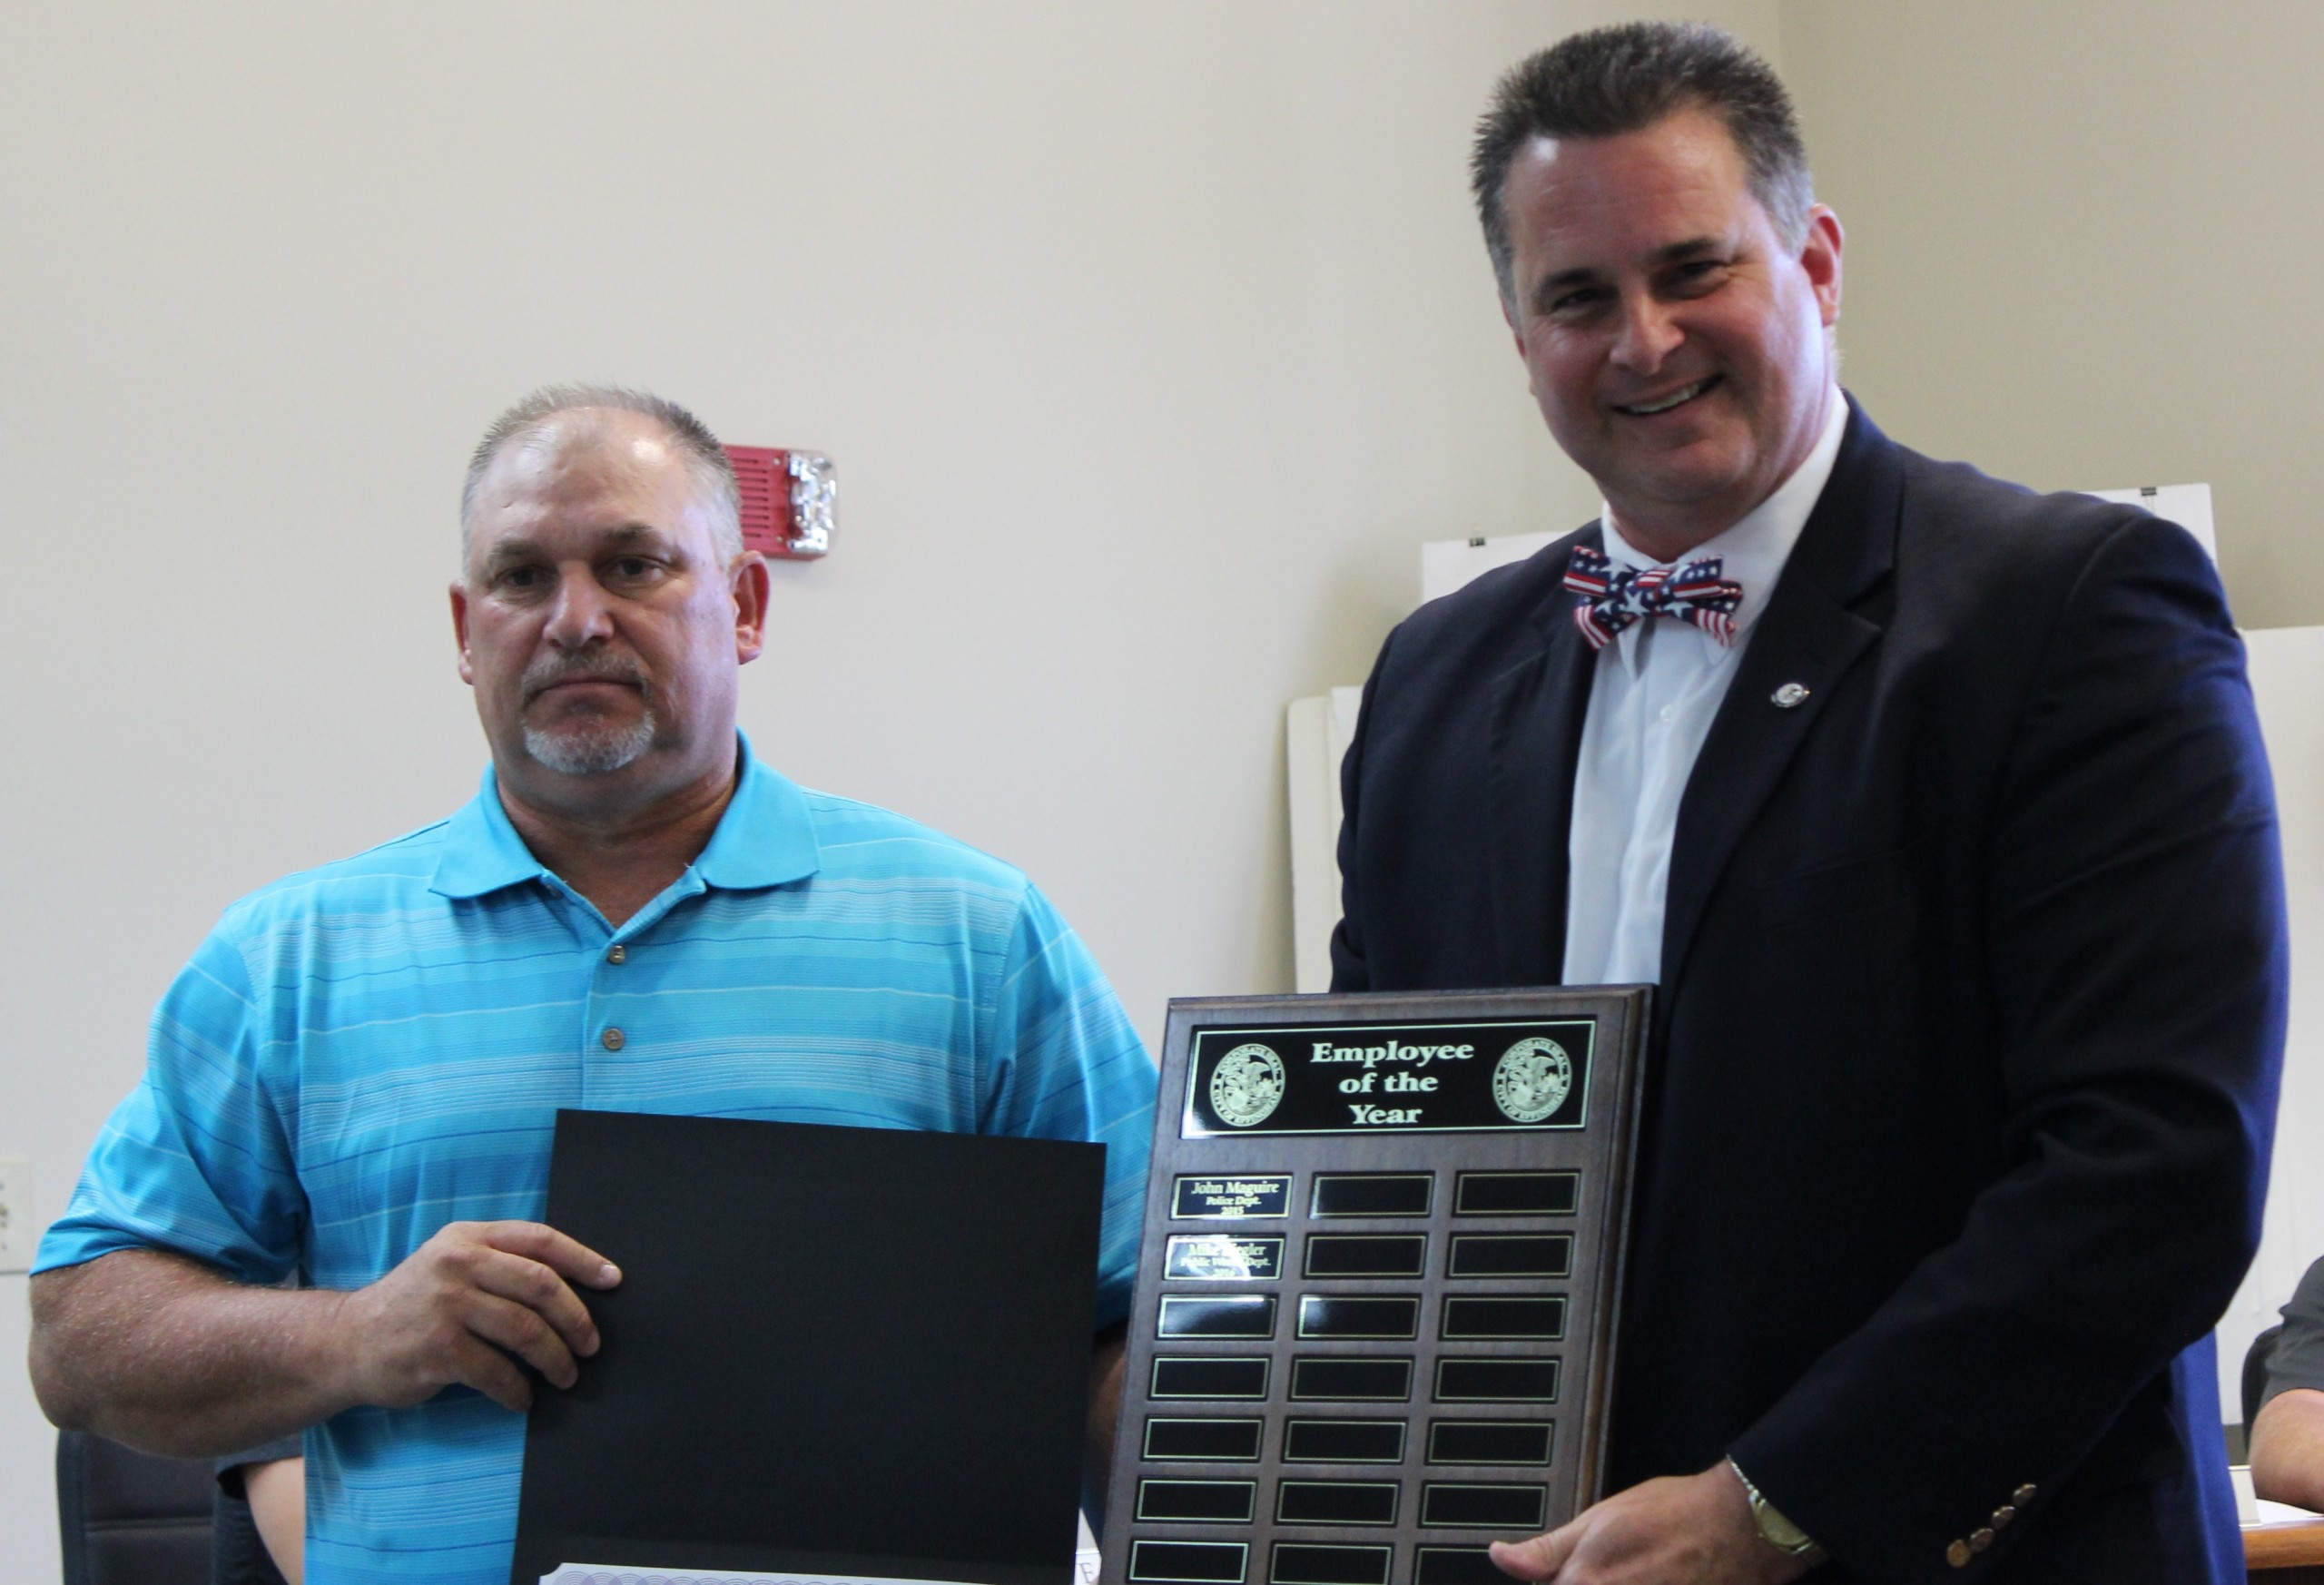 Effingham City Council Recognizes Mike Ziegler As Employee of the Year